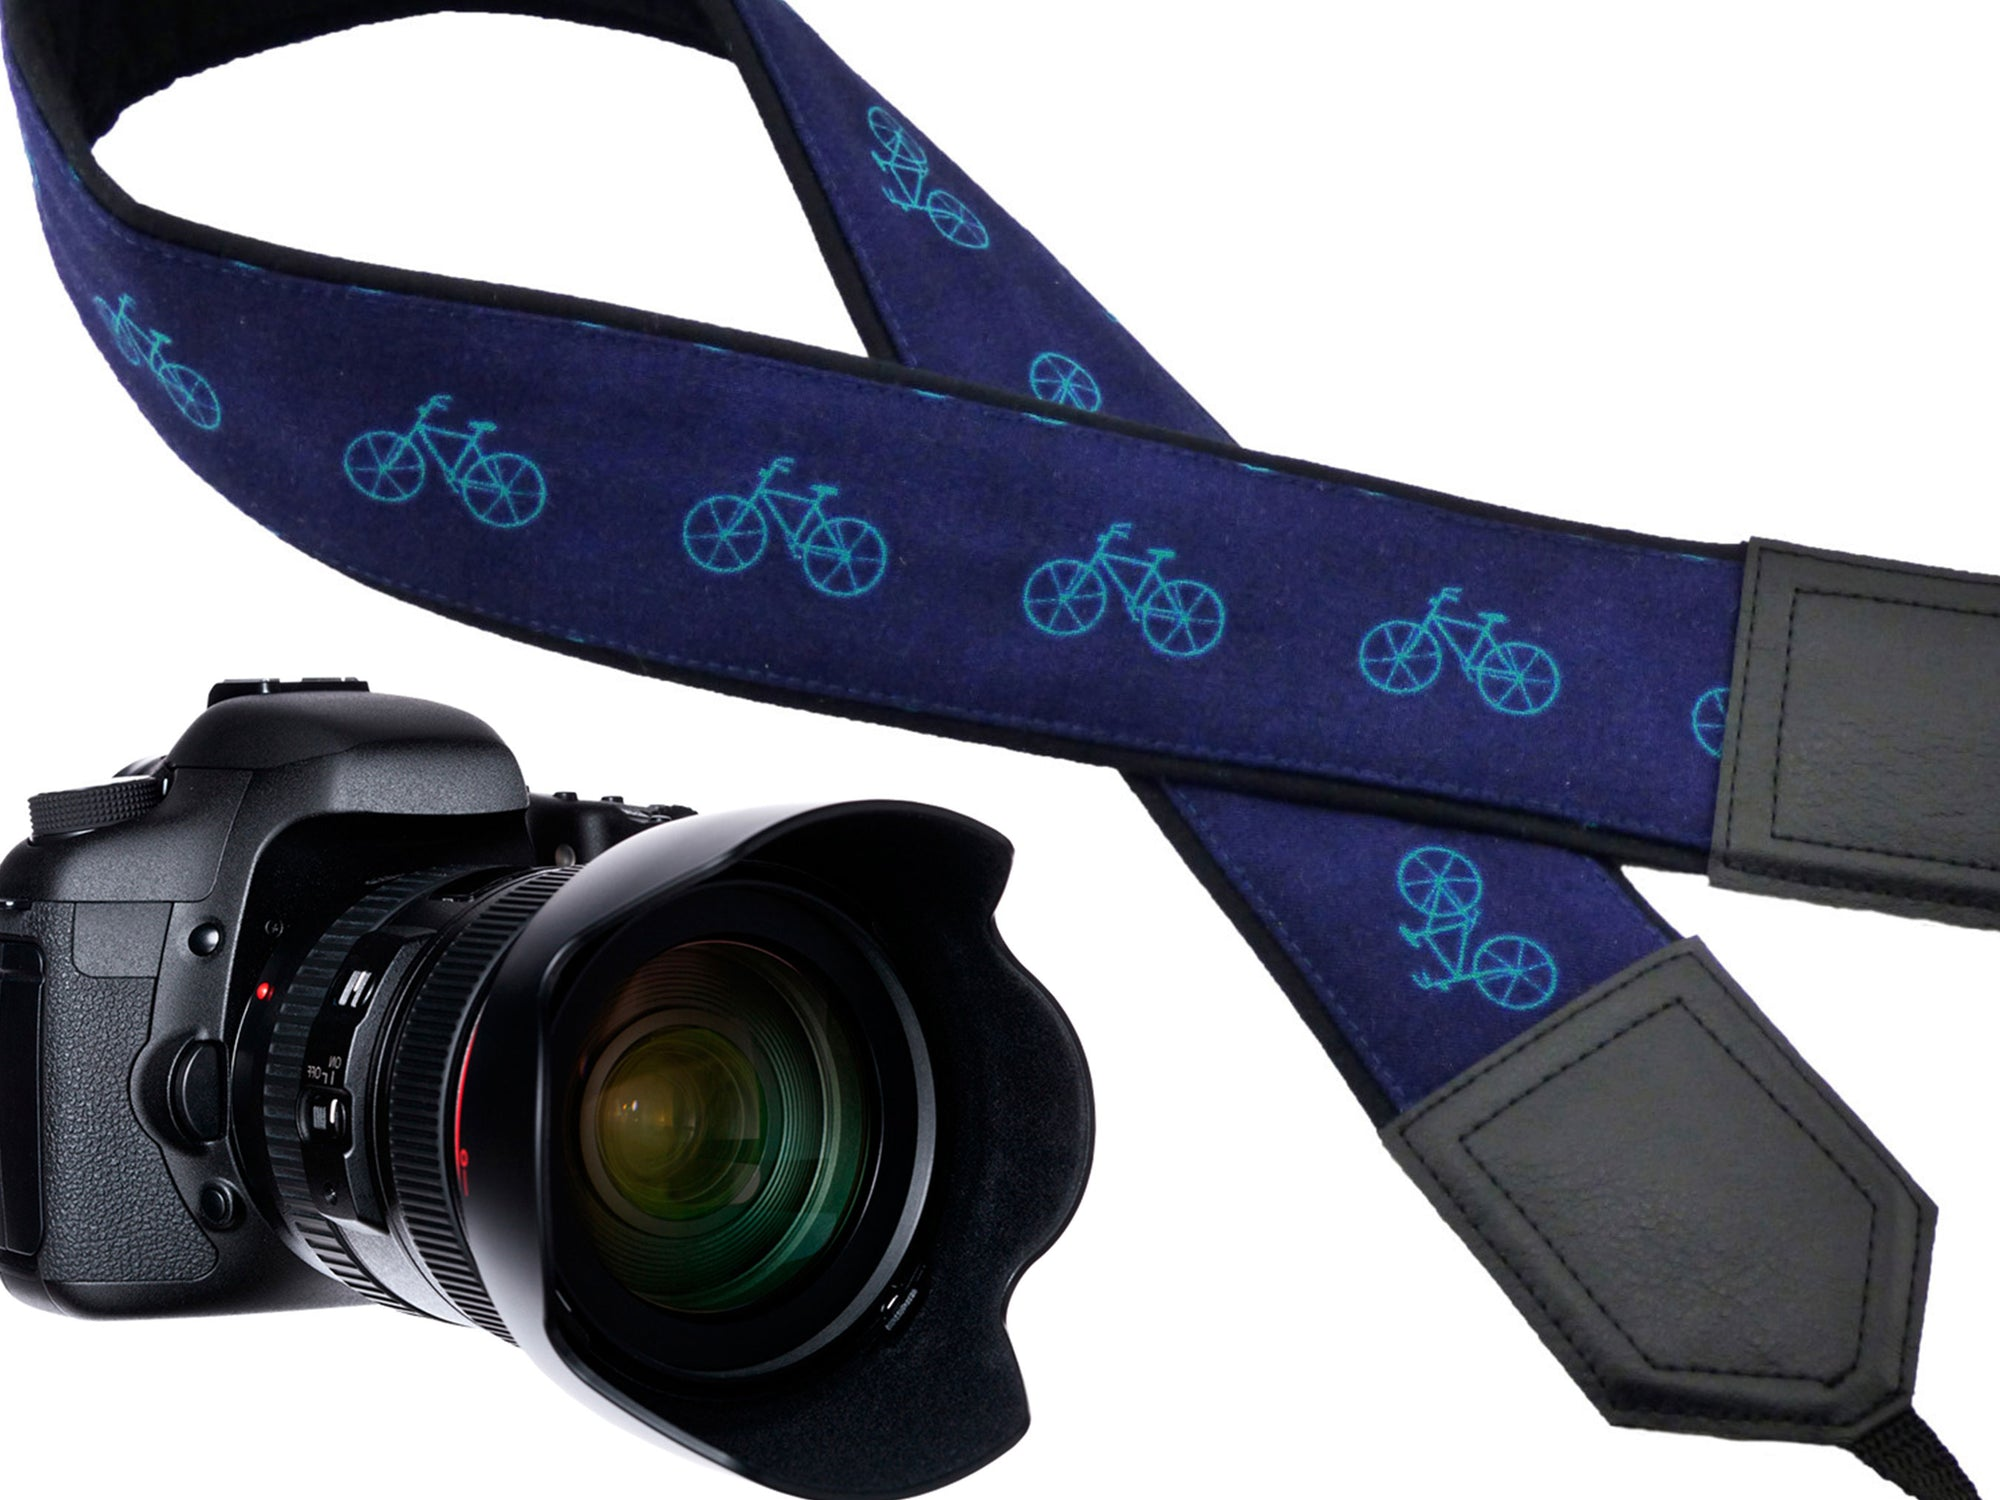 Personalized camera strap with bicycles Soft and well padded camera strap Unique skin friendly Camera accessory for Photographer